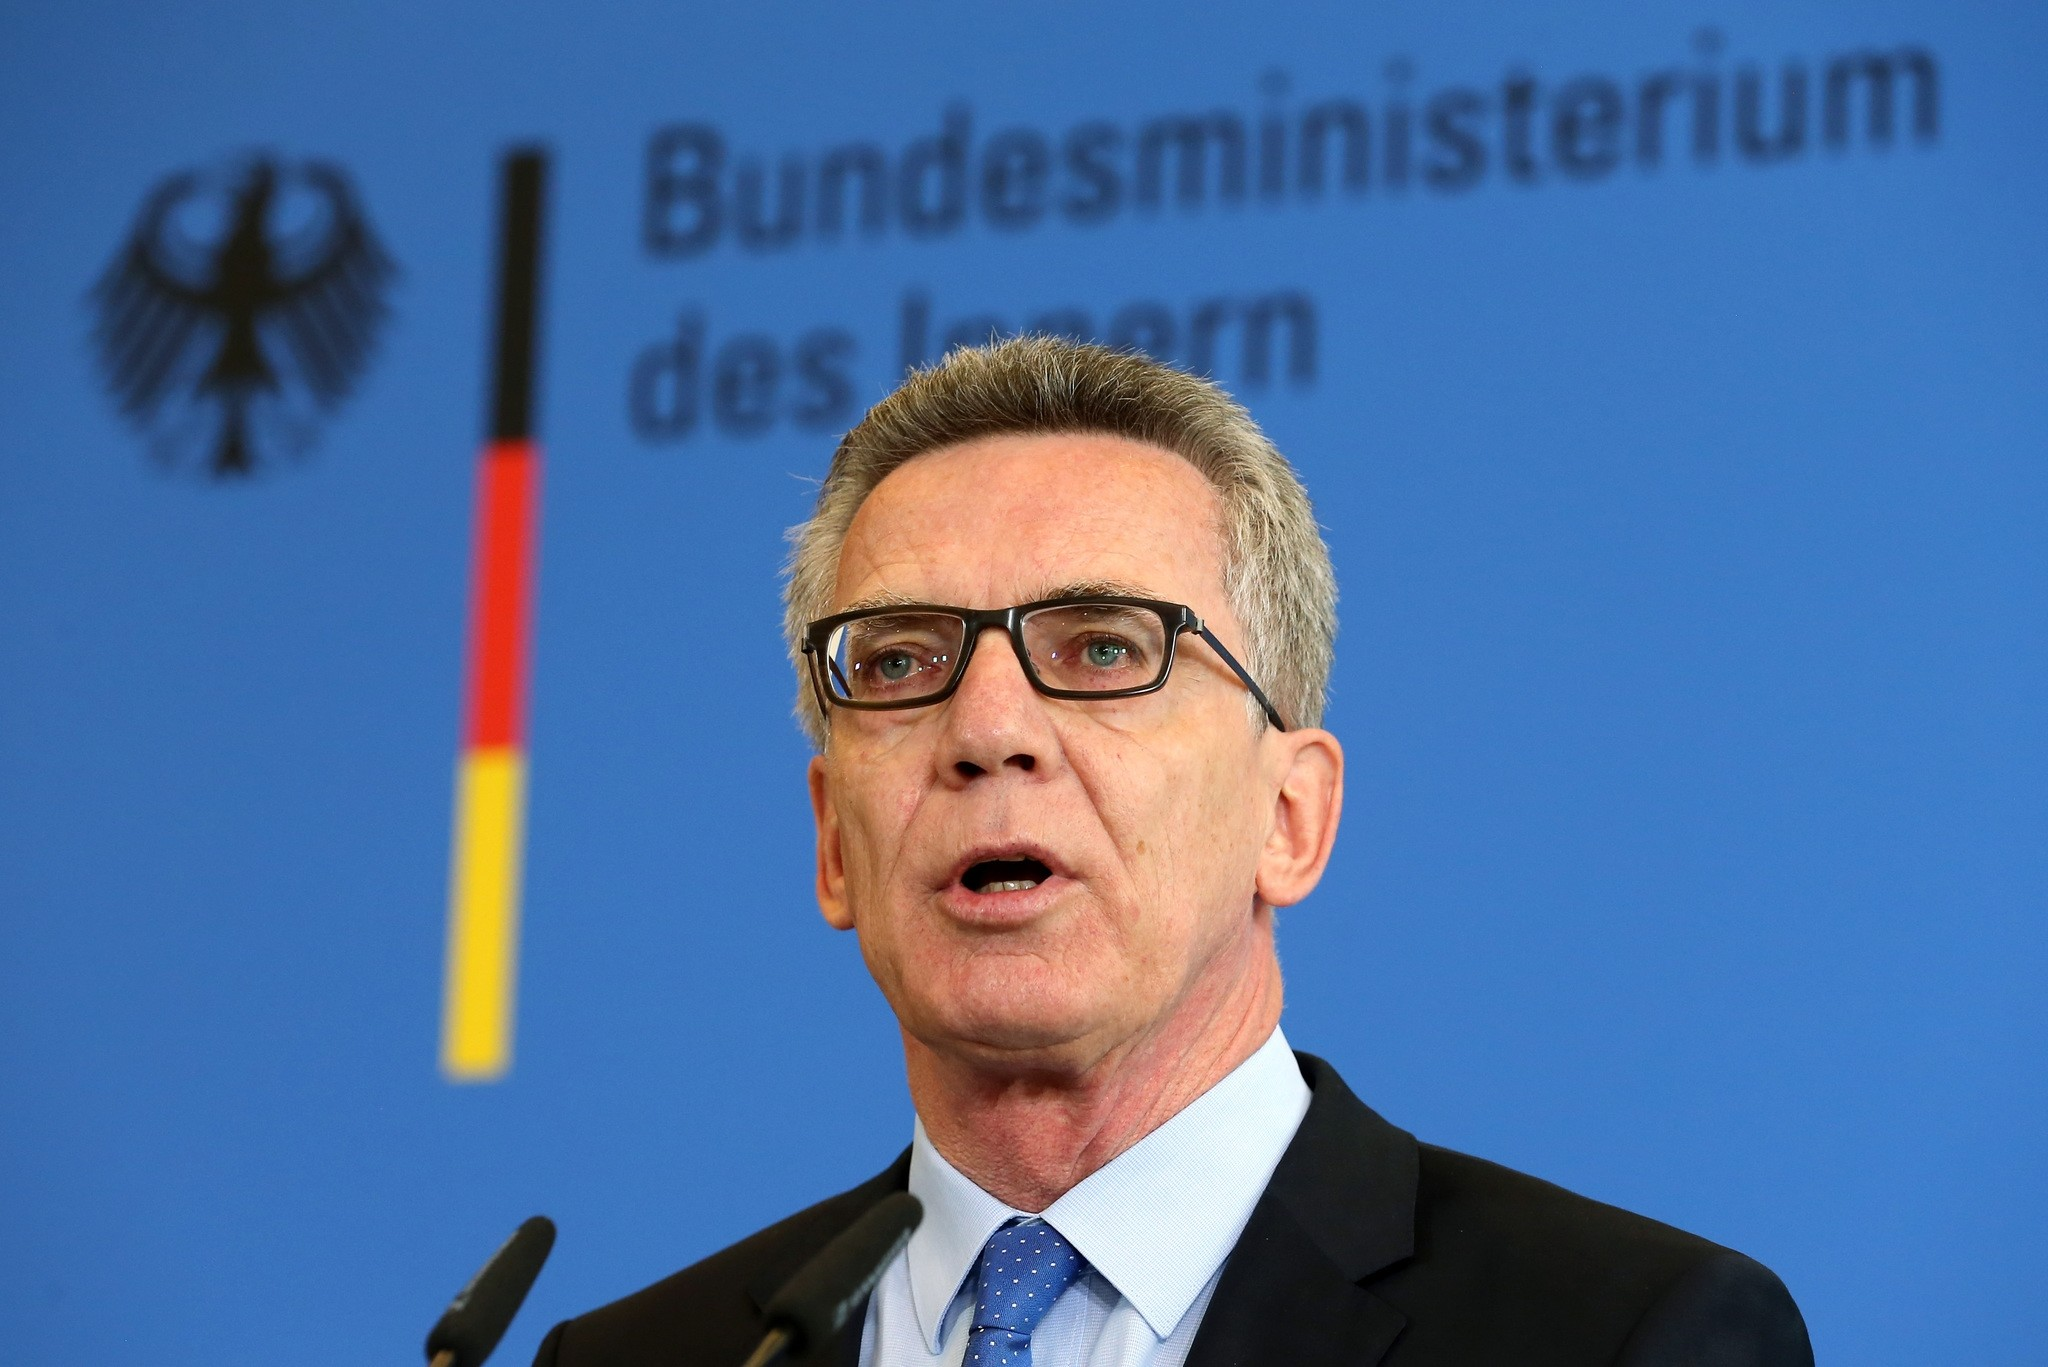 German Interior Minister Thomas de Maiziere, presents measures for increased security, in Berlin, Germany, Tursday, Aug. 11, 2016. (AP Photo)